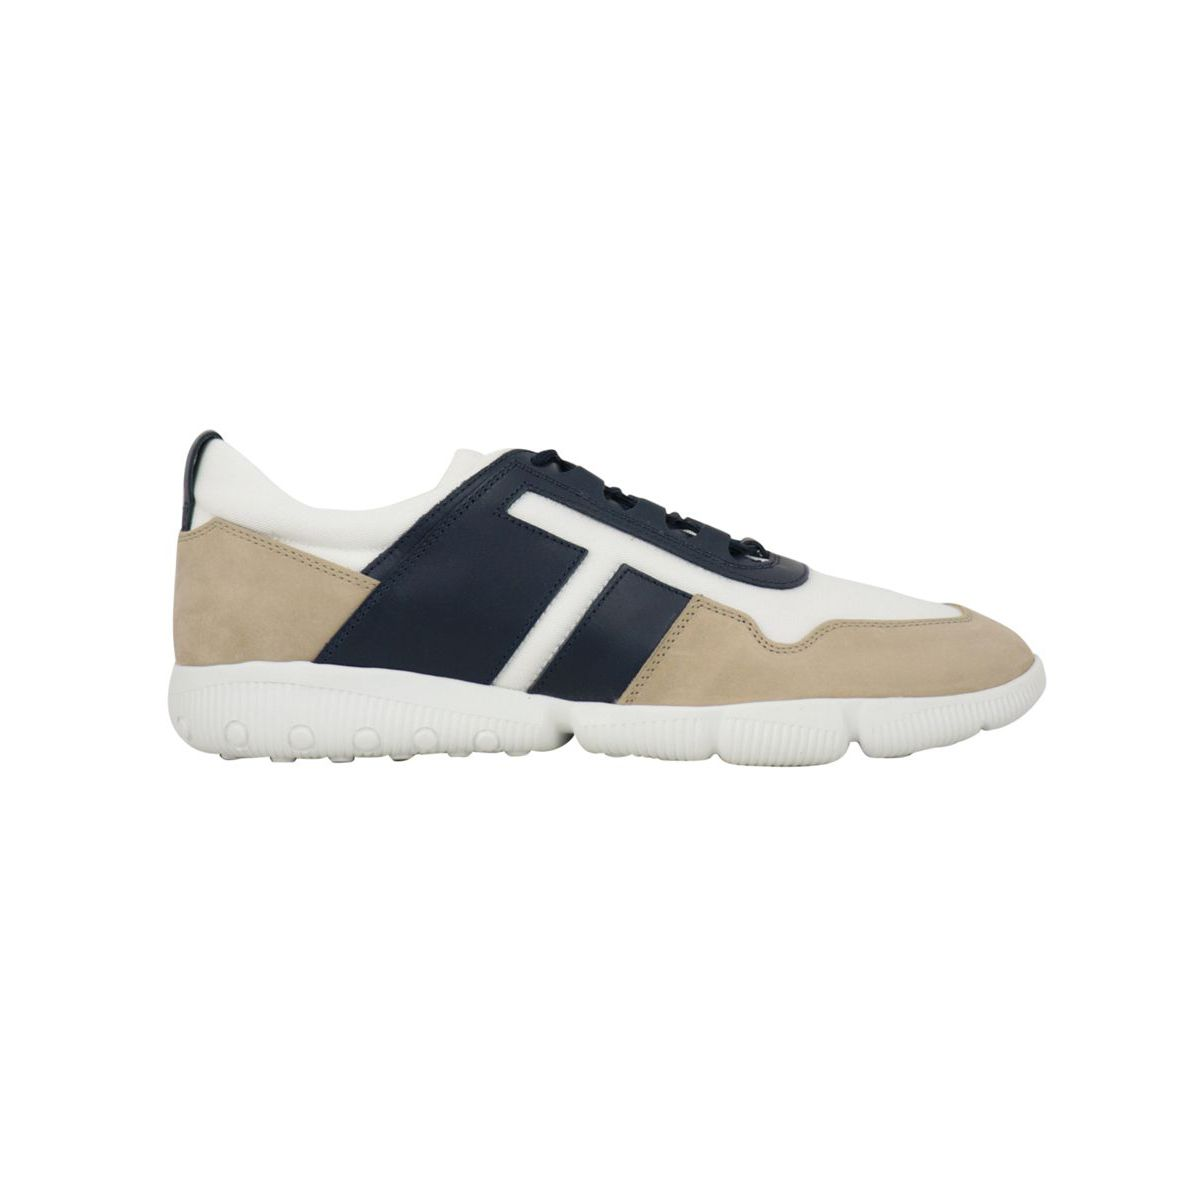 25 competition bimaterial sneakers White navy beige Tod's